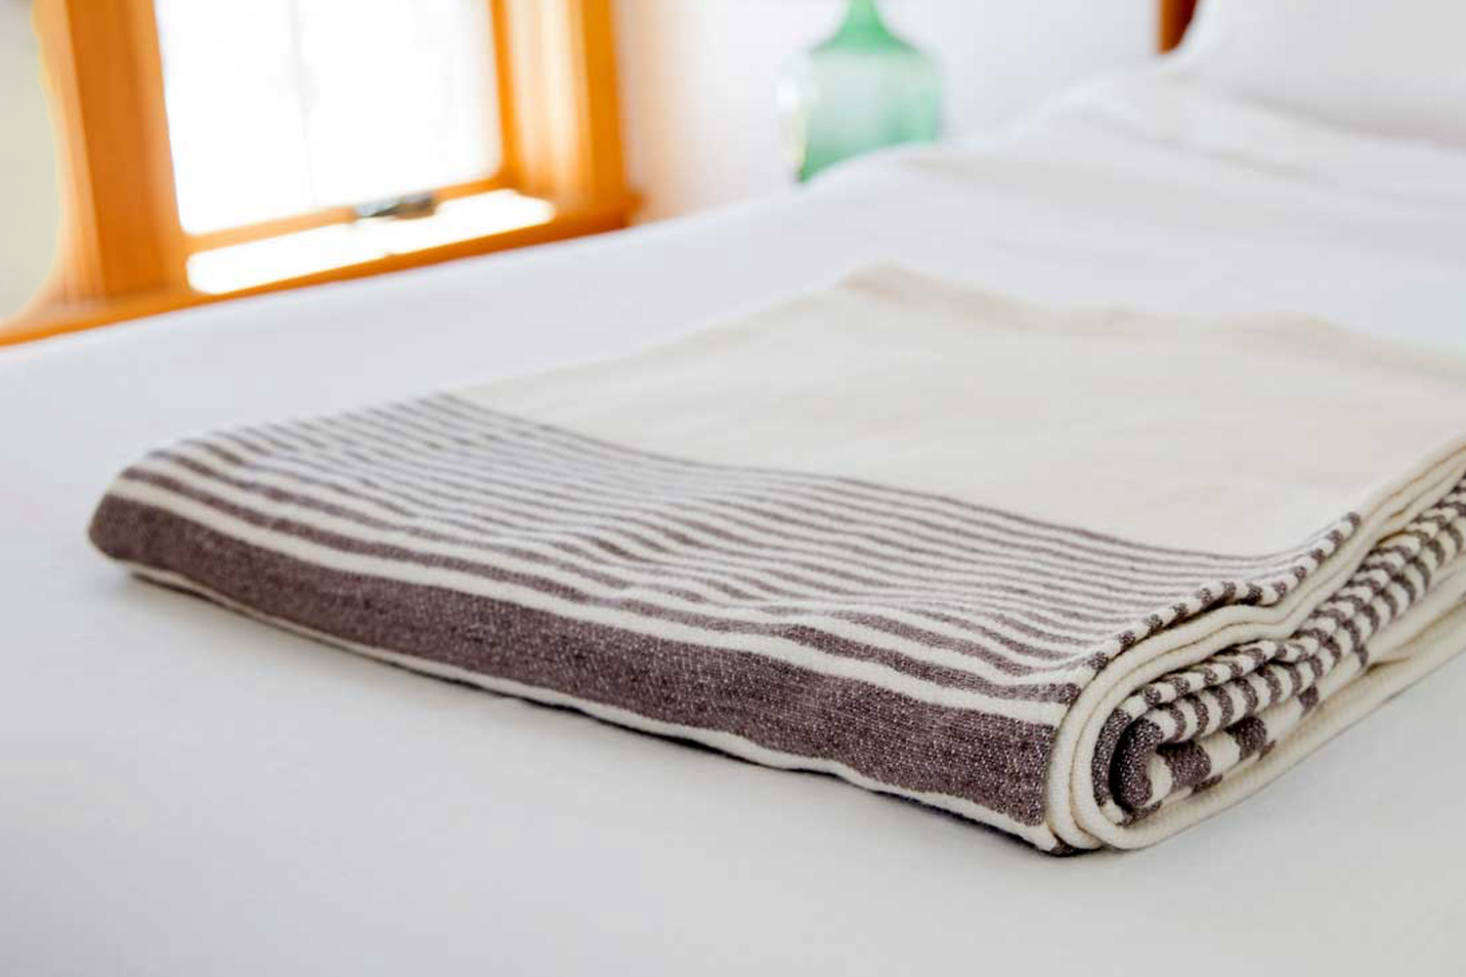 Washable wool winter blankets from Swans Island in Maine are made of a two-layer winter weave of wool from Penobscot Bay sheep and dyed by hand using all-natural dyes. The Penobscot Wool Blanket, shown here, is $495-$675.